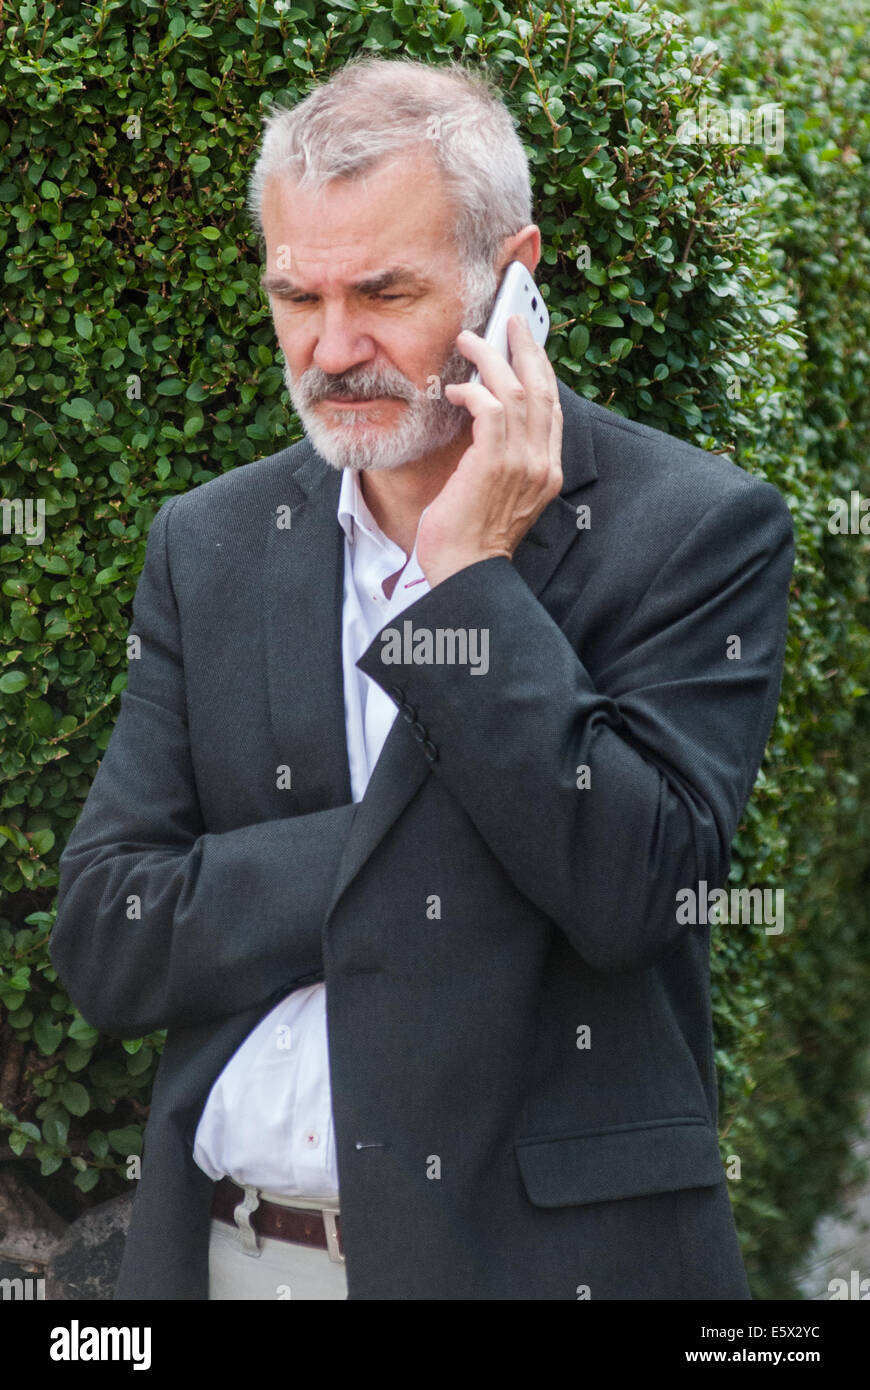 London, UK. 7th August, 2014.  Conservative member of the London Assembly, Andrew Boff, speaks on the phone as the - Stock Image